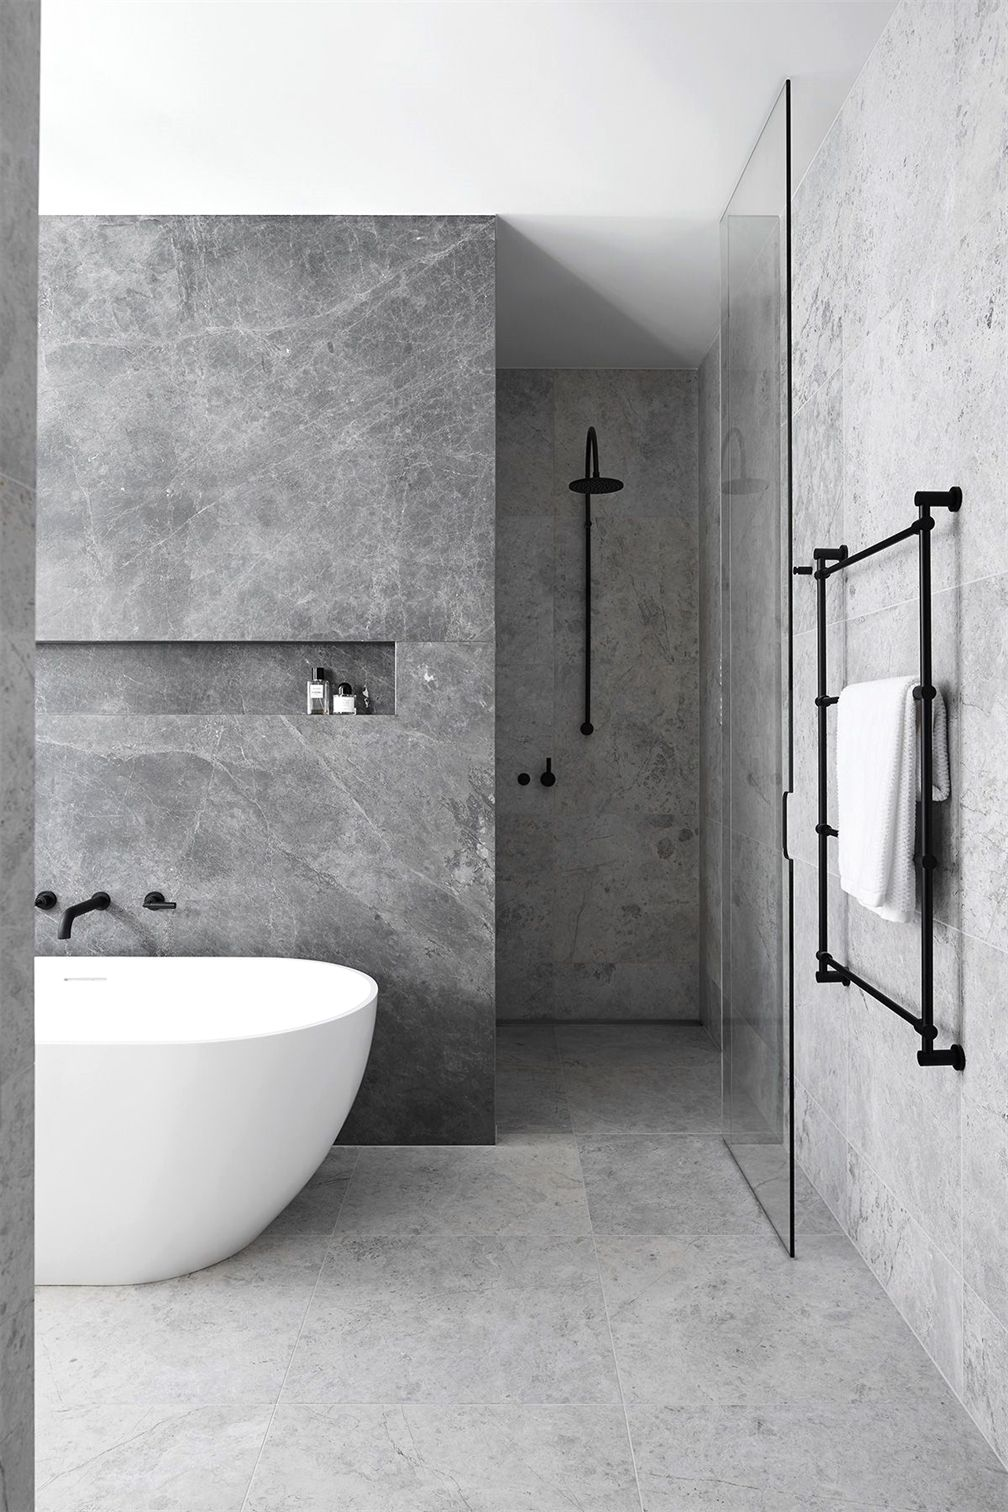 Cocoon Black Bathroom Taps Inspiration Black Taps And Fixtures Bycocoon Com Stainless Steel Grey Bathrooms Designs Hotel Bathroom Design Bathroom Interior